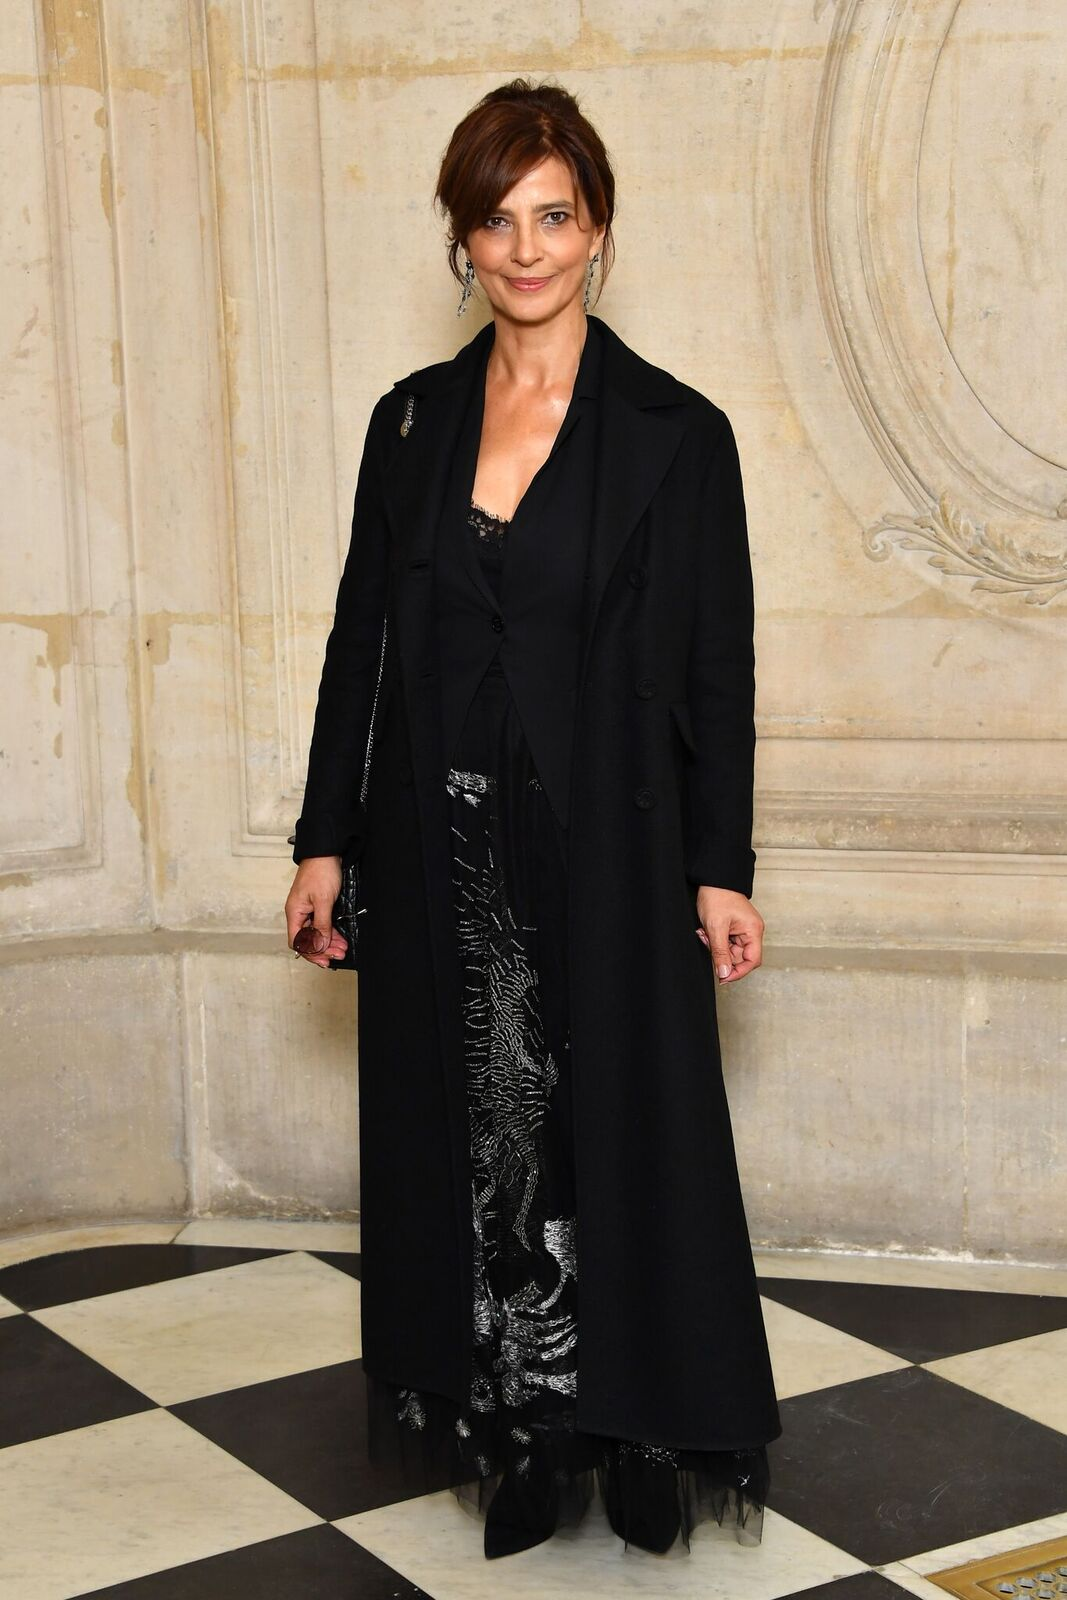 Christian Dior SS18 Celebrities Looks